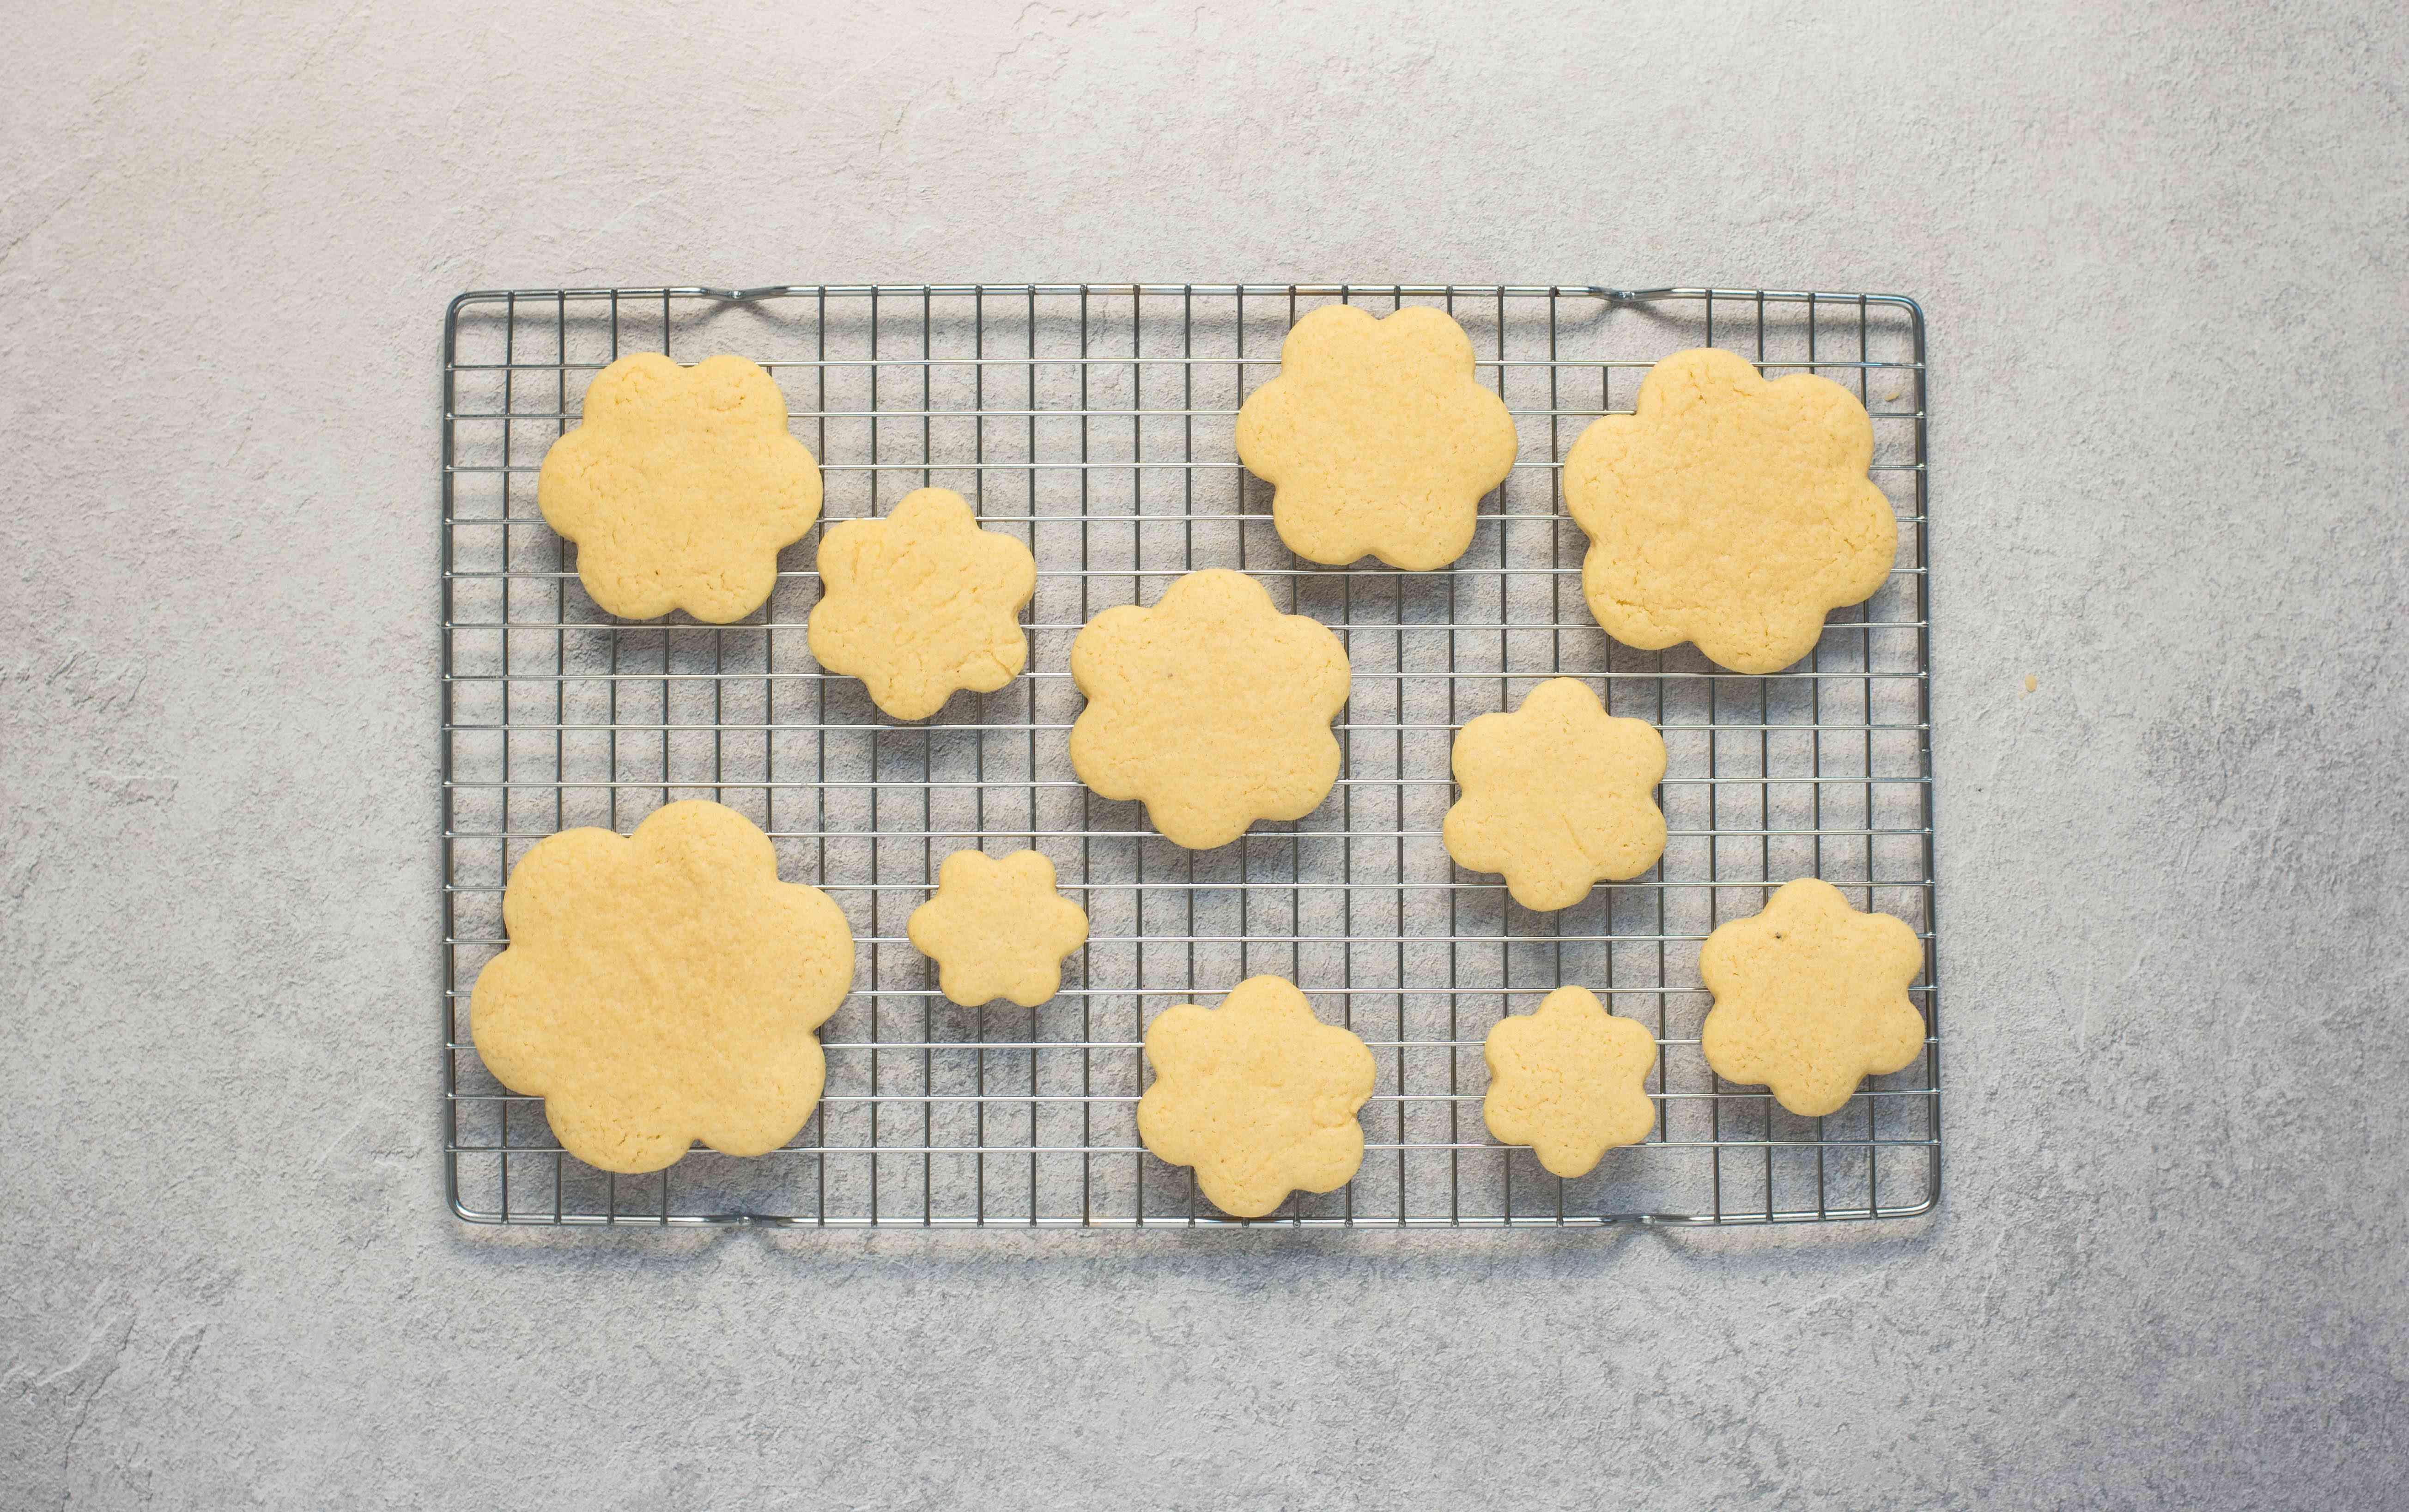 Place cookies on parchment